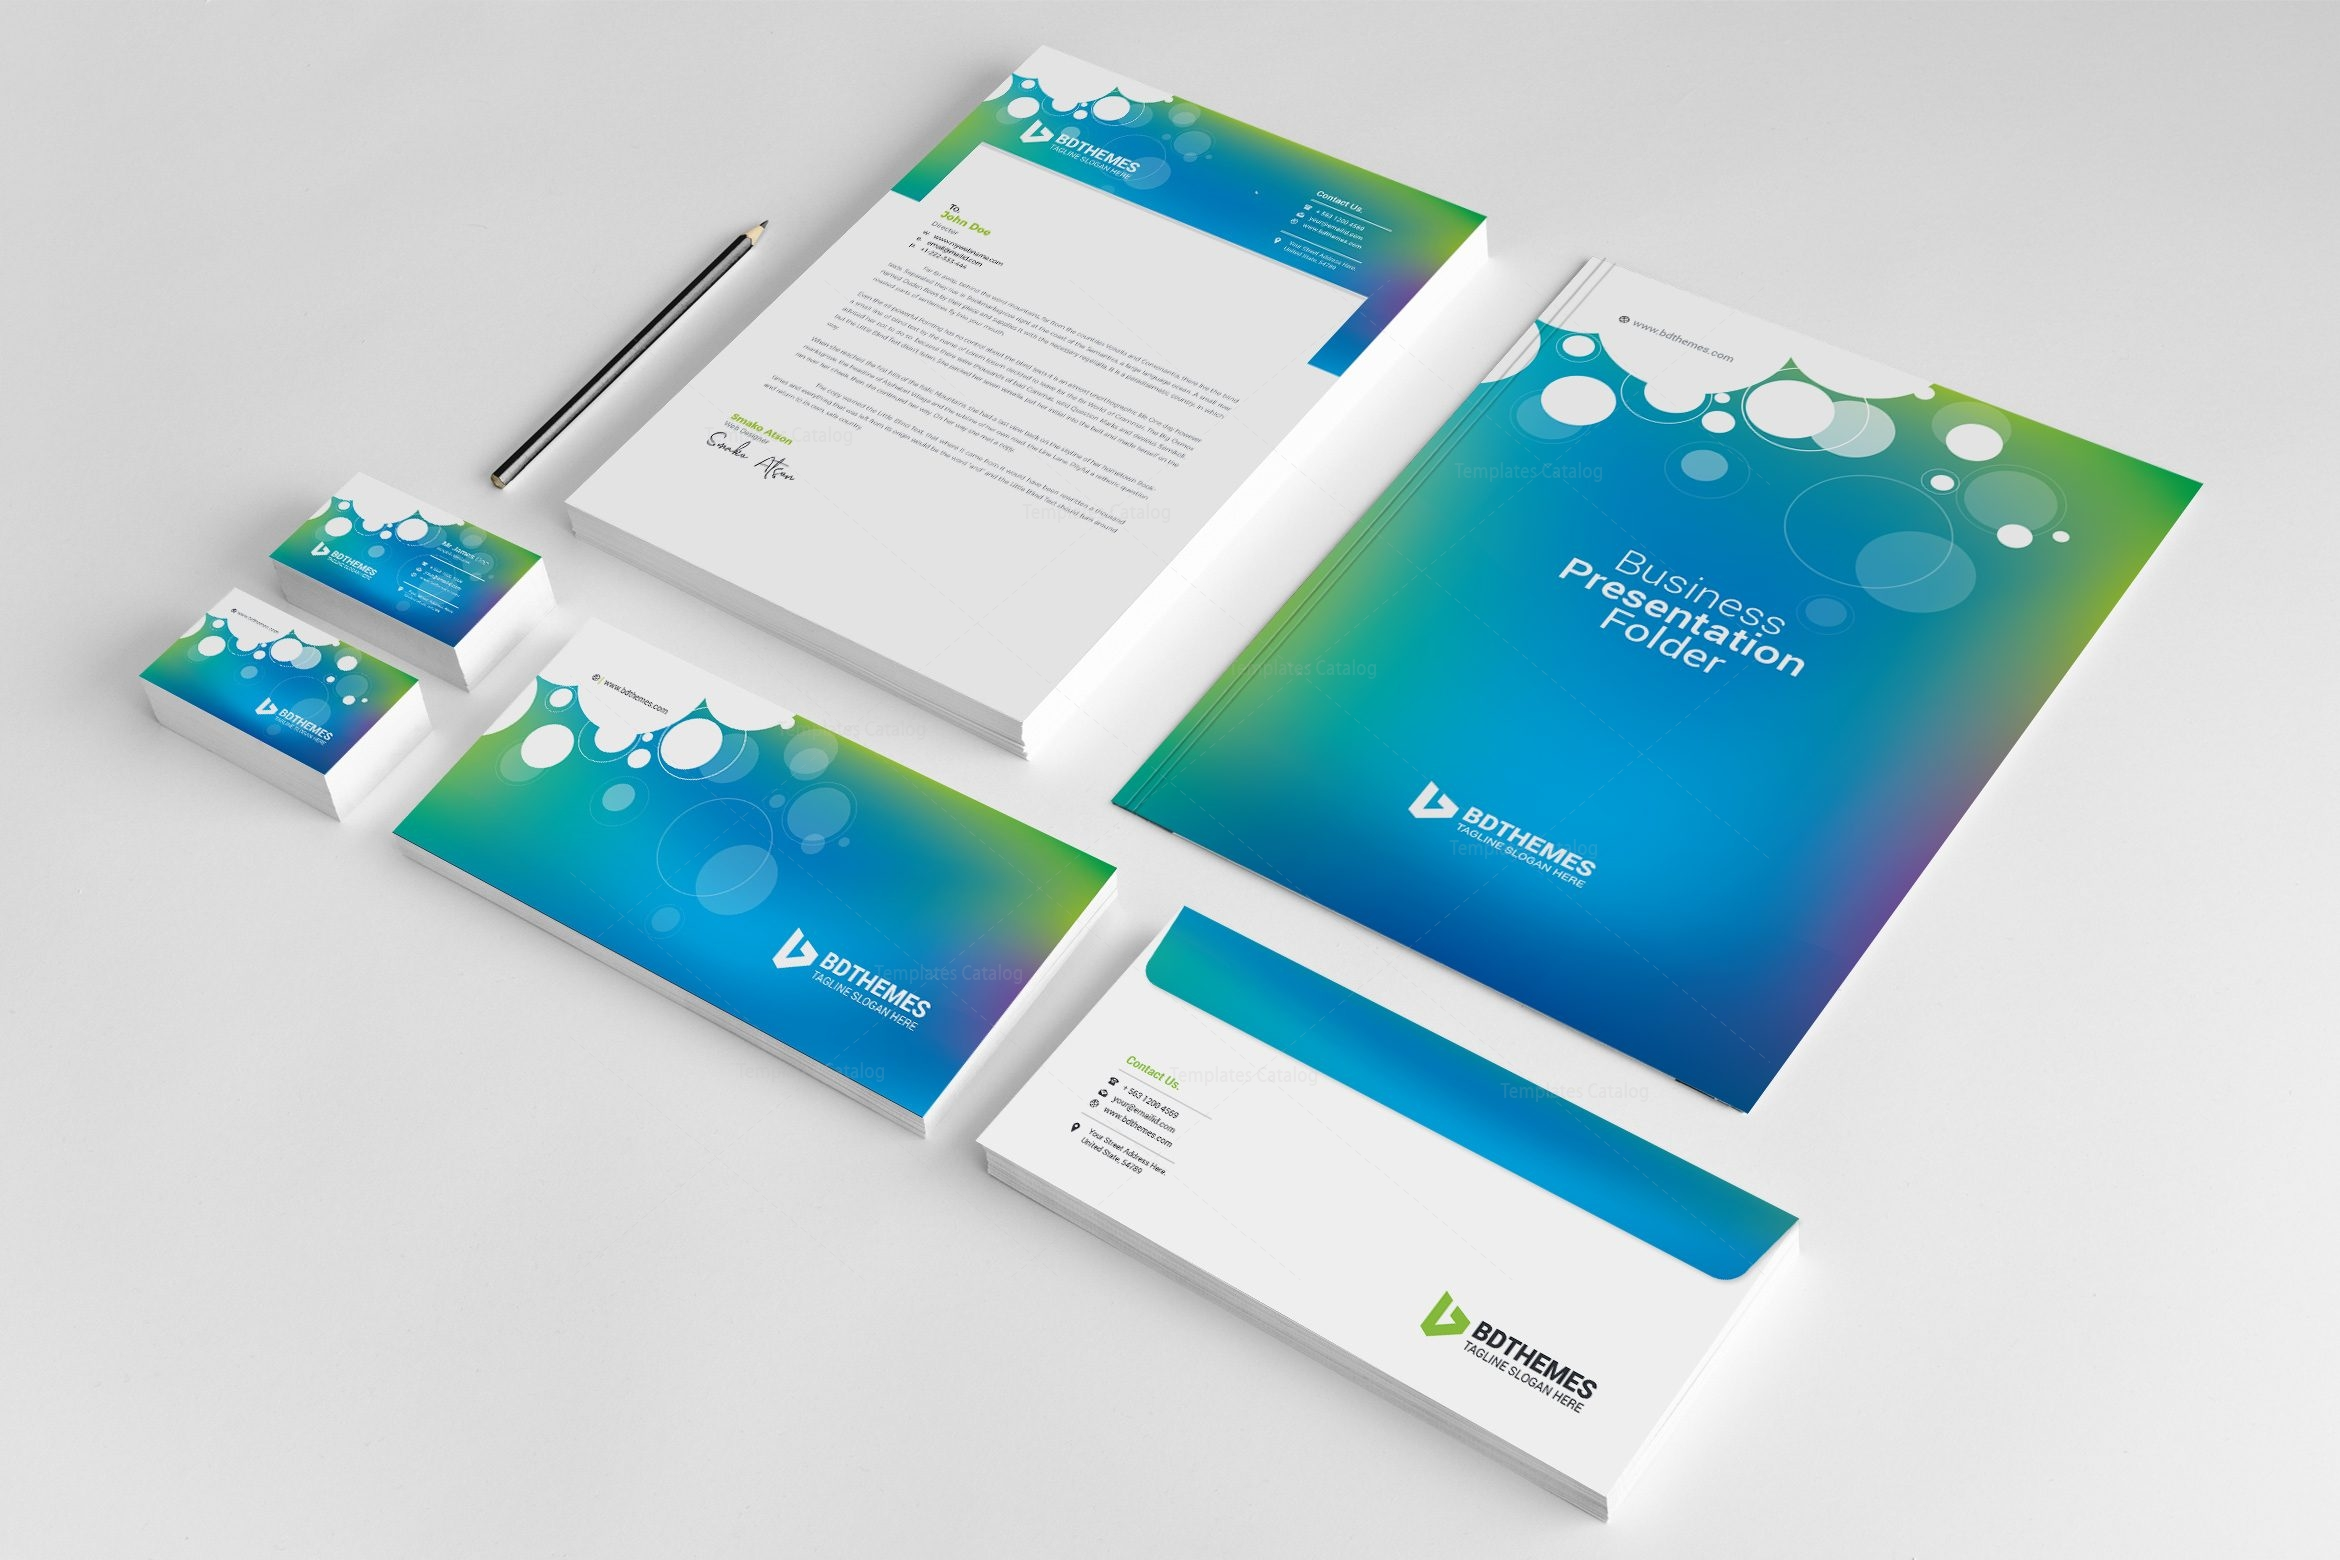 Corporate Graphic Design Commercial Corporate Identity Pack Design Template 002297